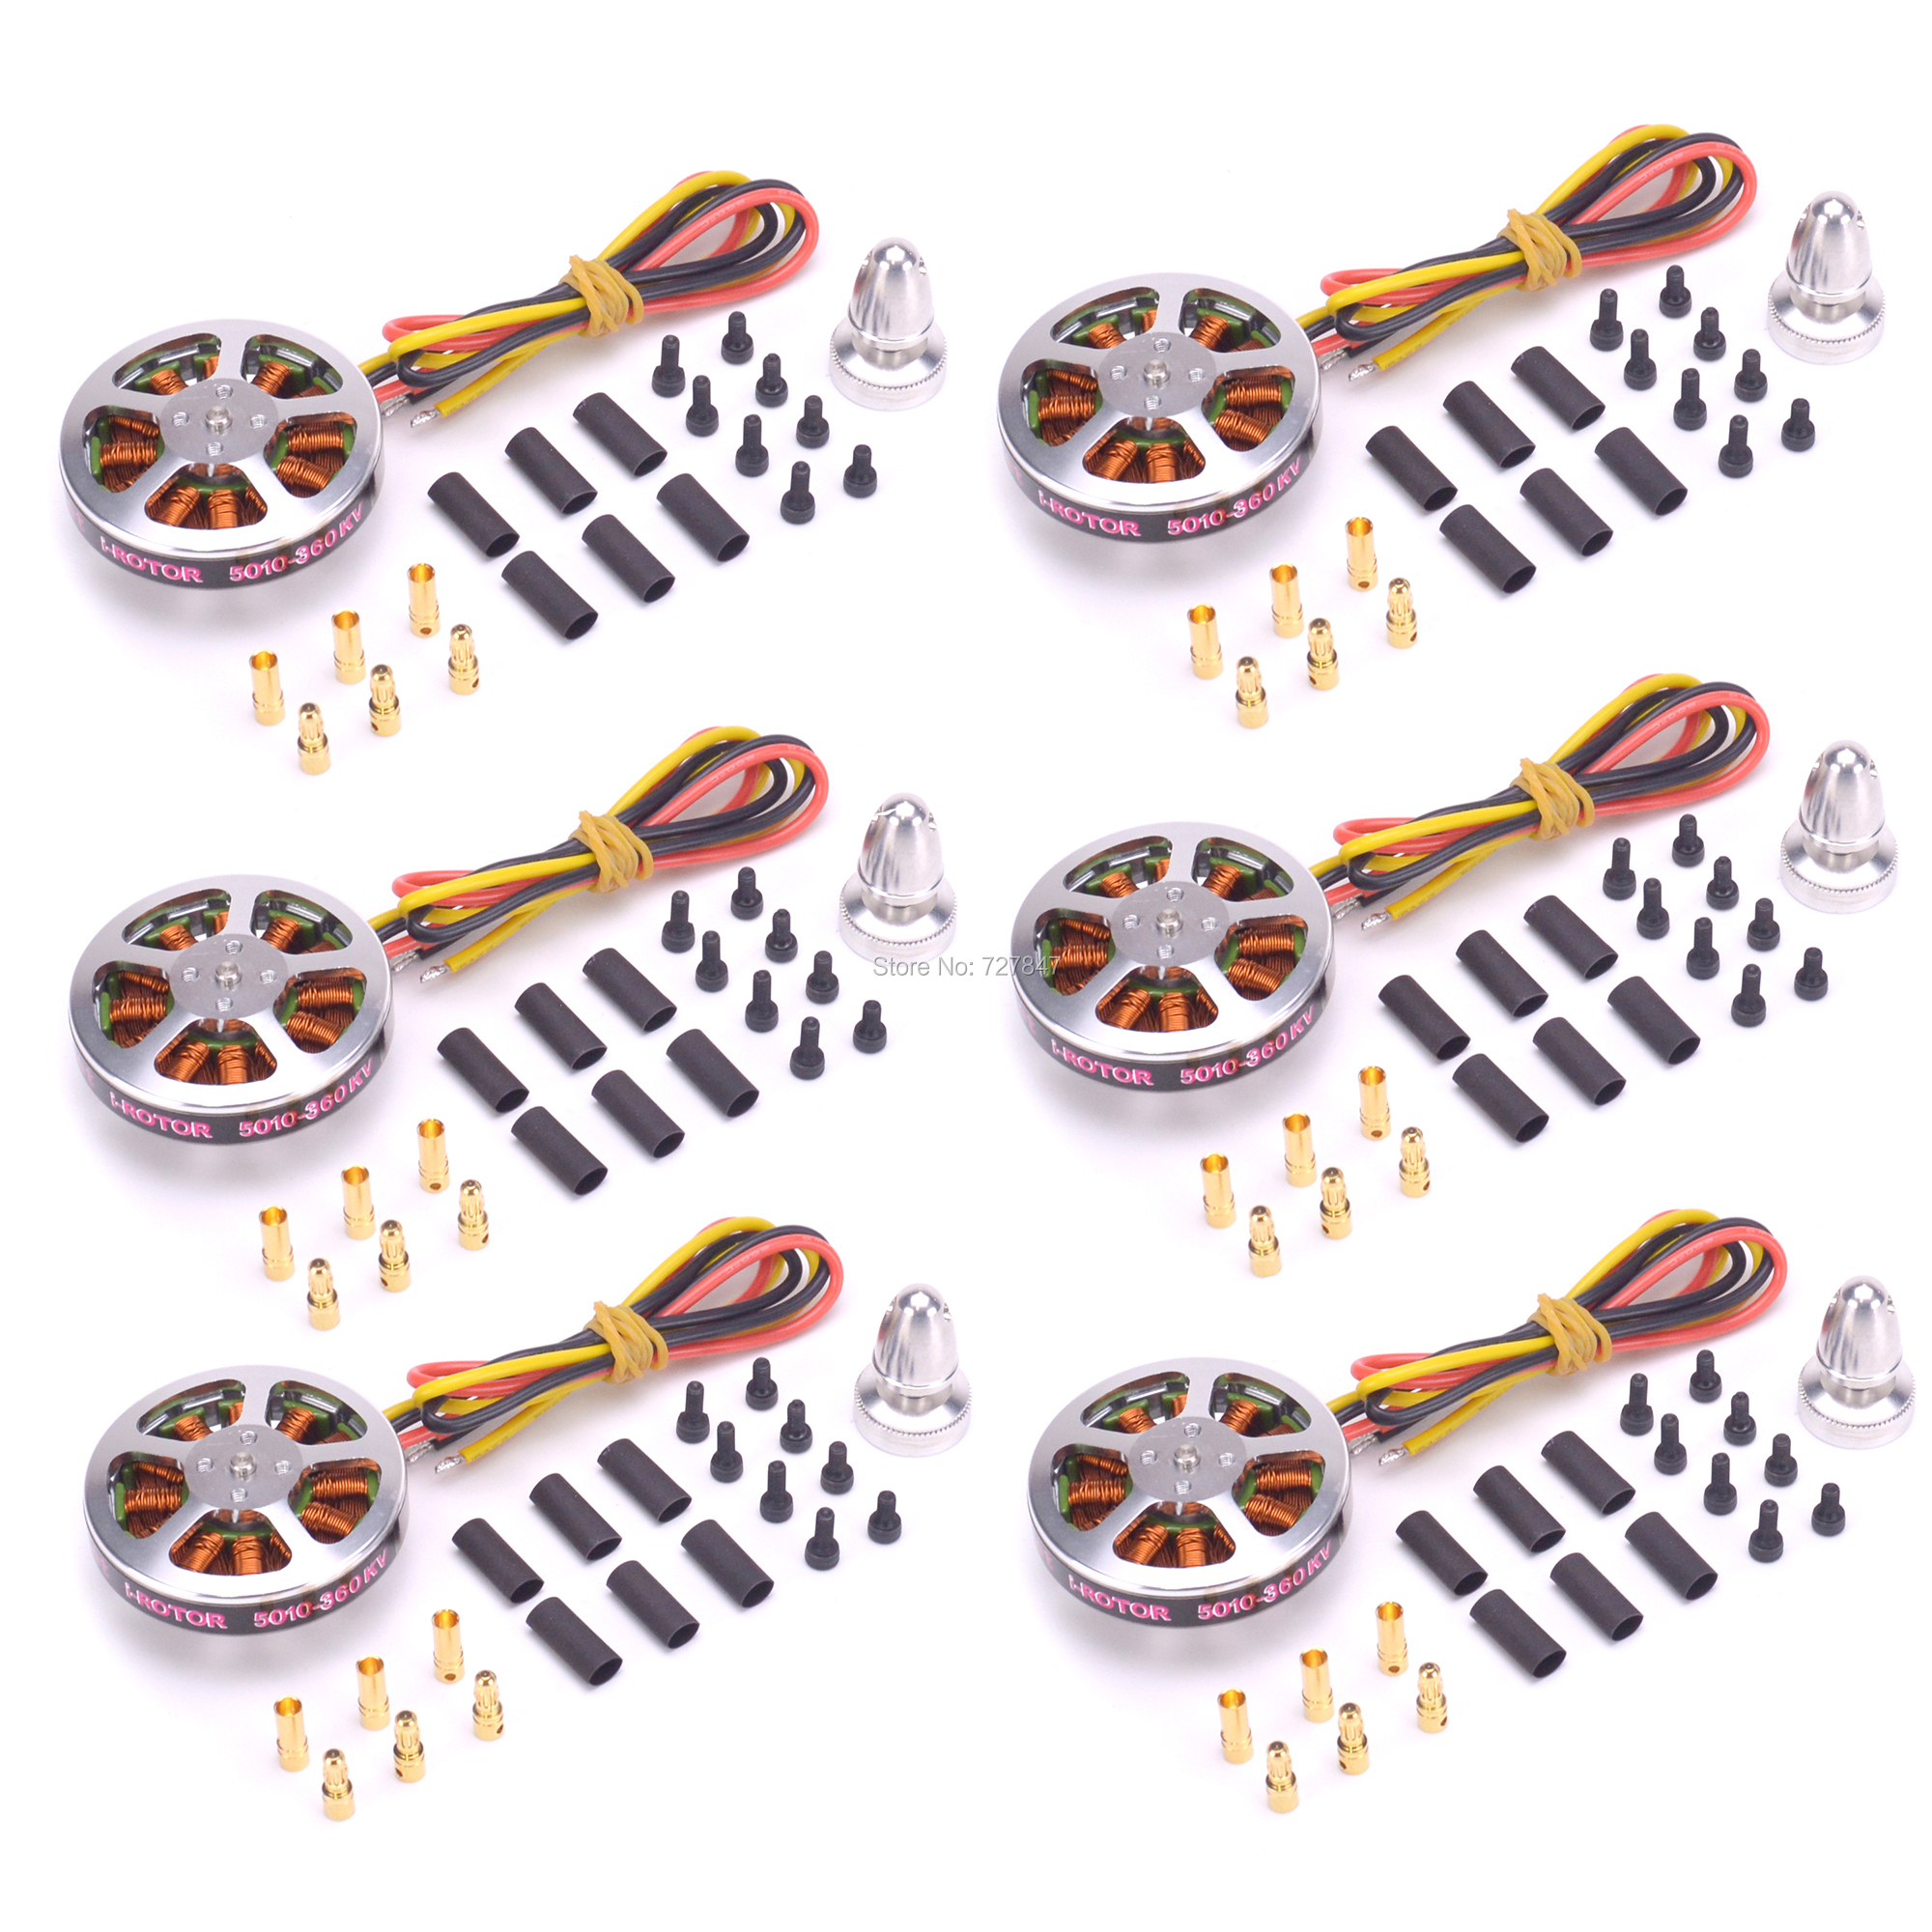 6 PCS <font><b>5010</b></font> 360KV / 750kv High Torque Brushless Motors For ZD550 ZD850 MultiCopter QuadCopter image